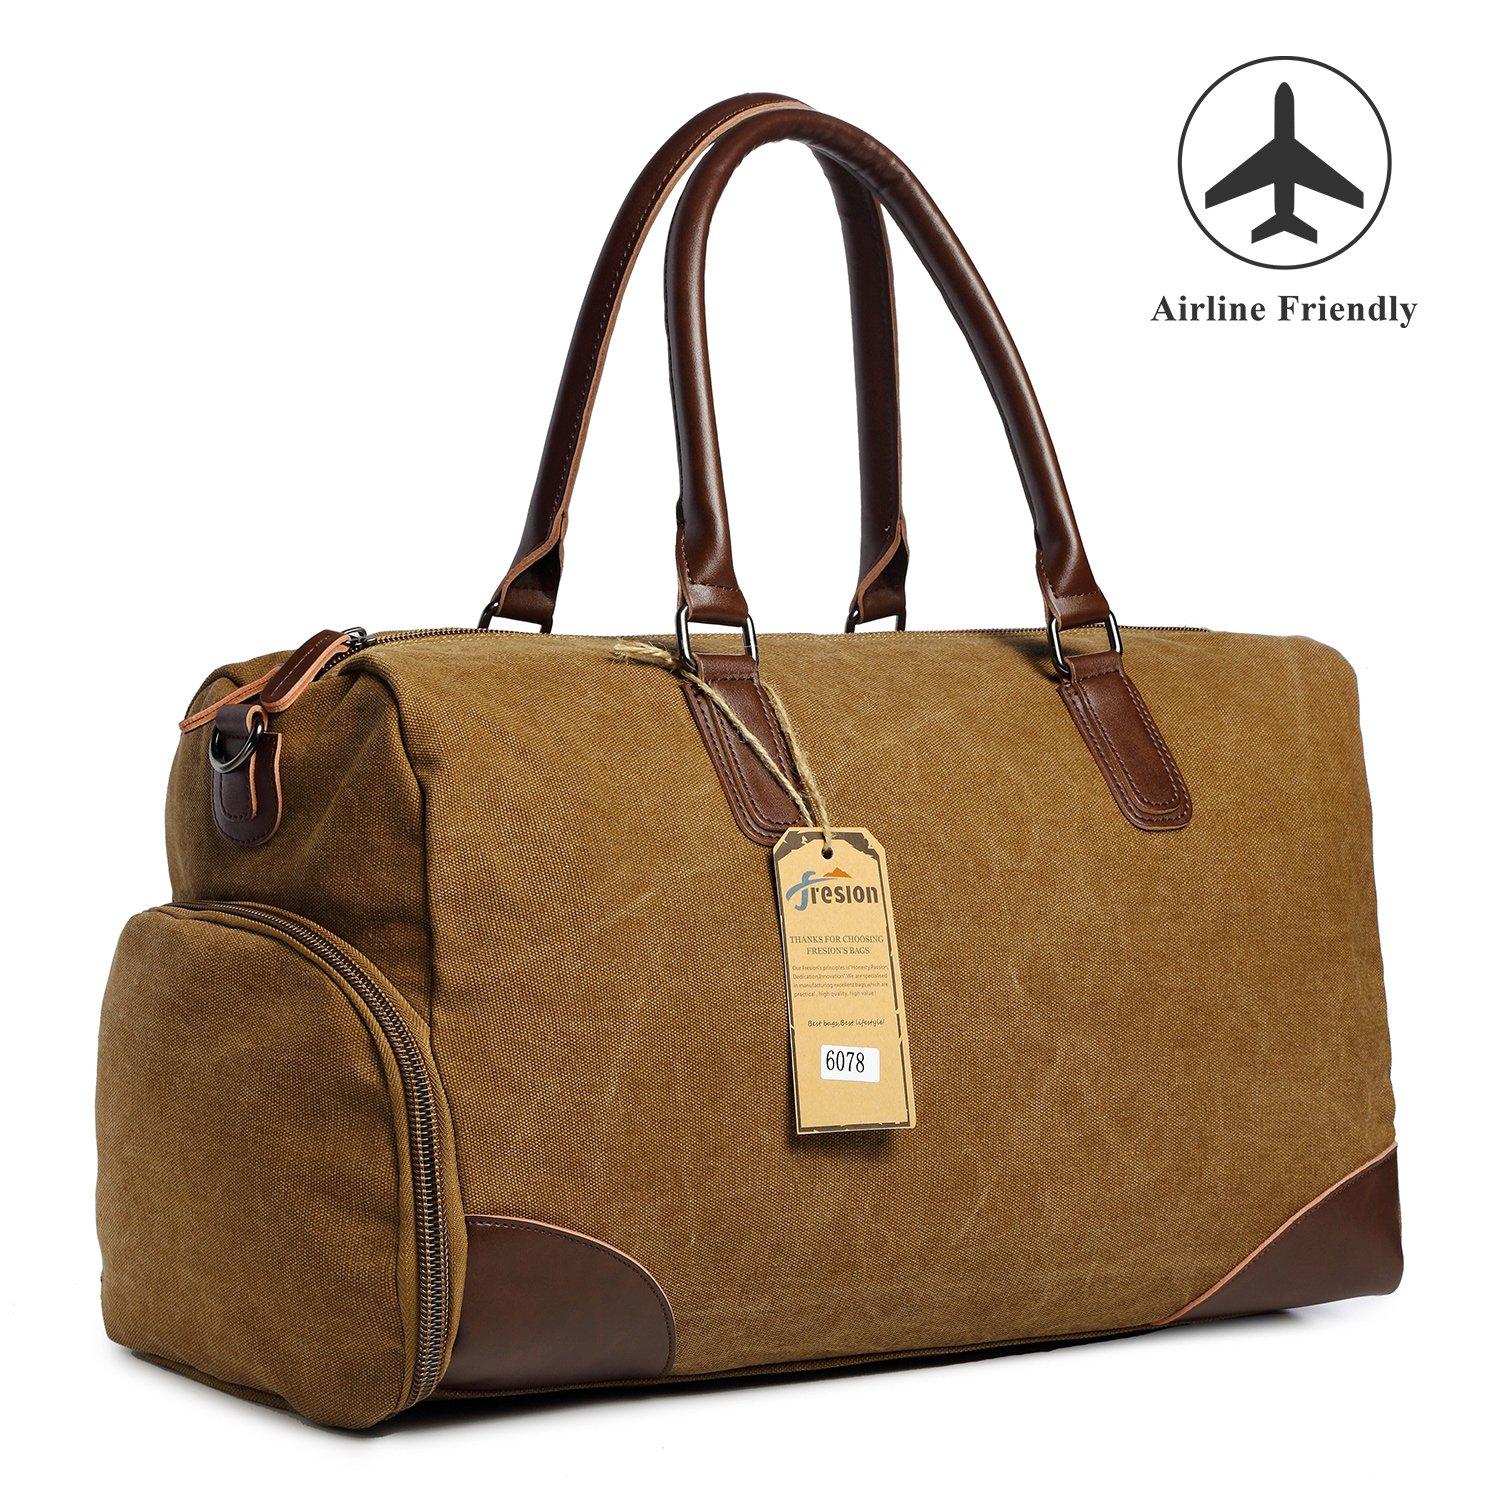 Oversized Travel Canvas Duffel Bag Leather Overnight Bag Carry on Bag Weekender Bag Men Women with Shoes Compartment (Coffee)